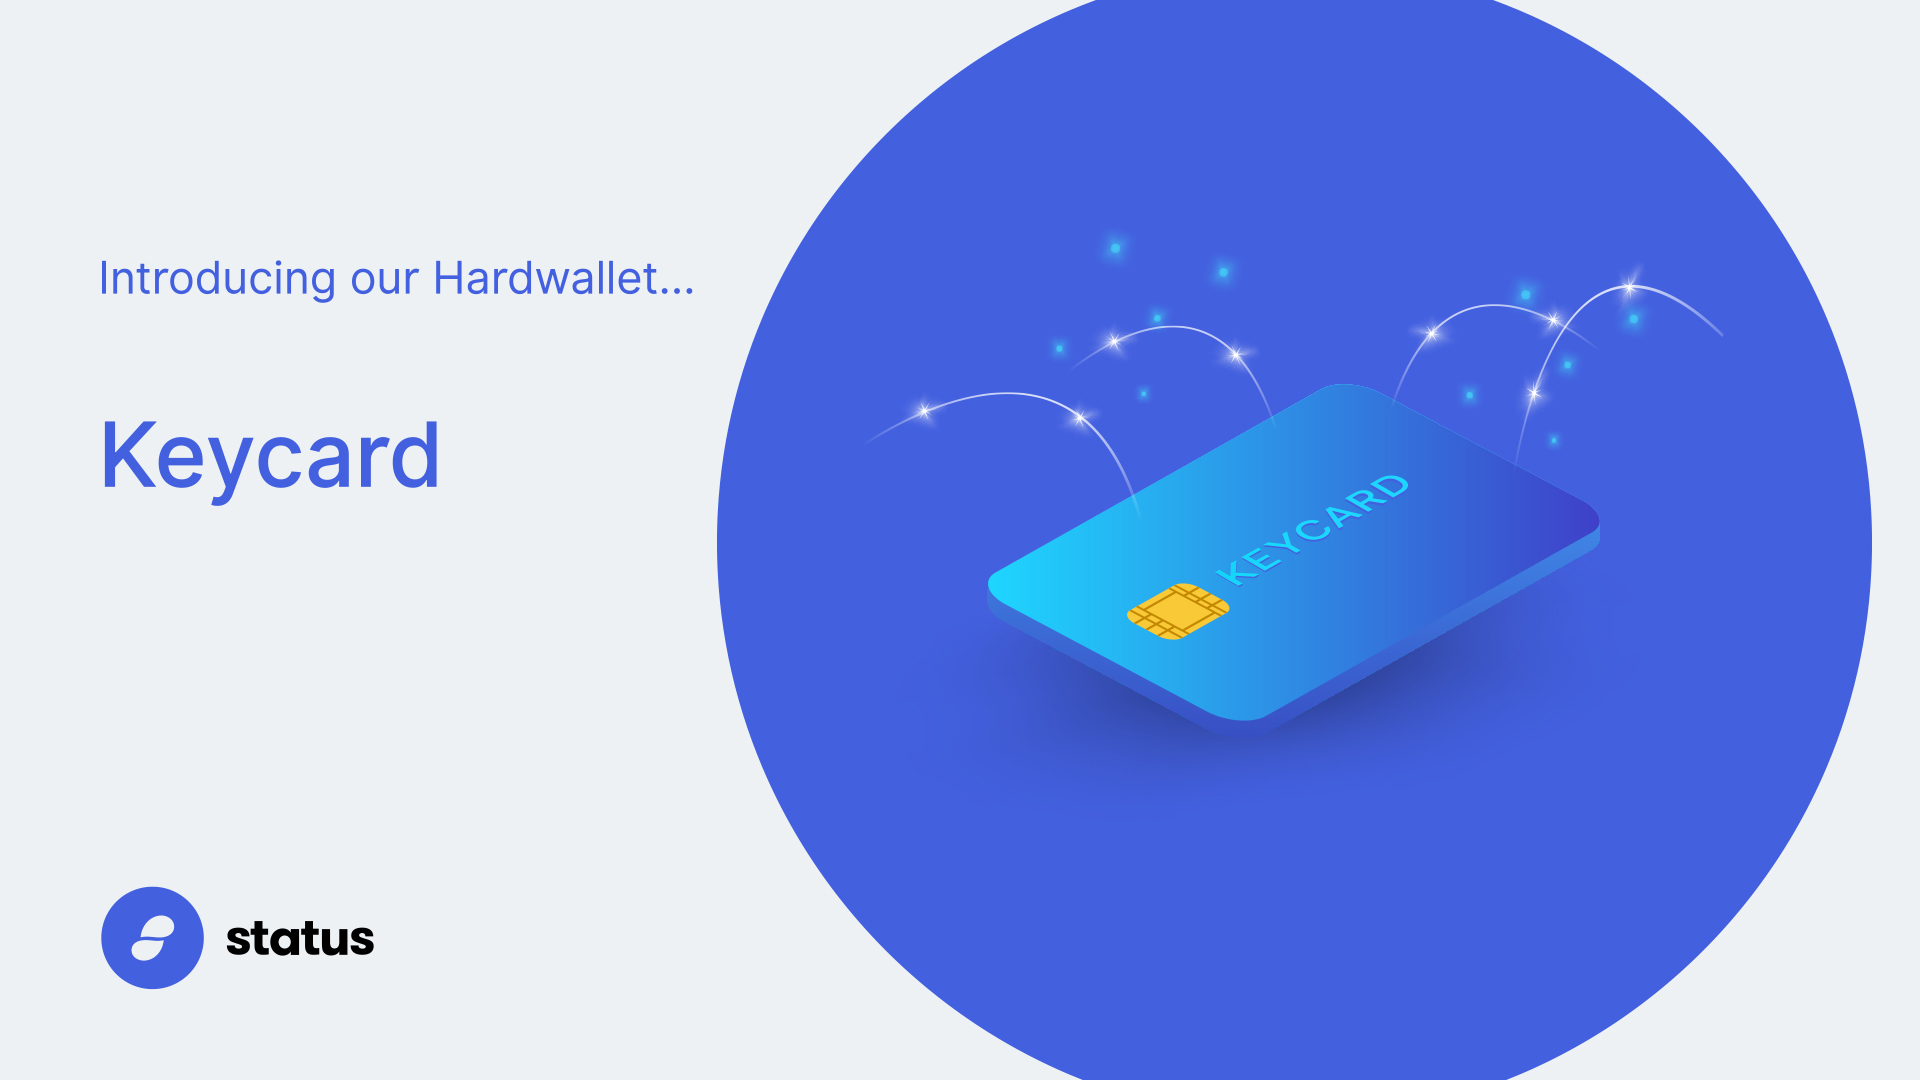 Bye bye hardwallet, you're Keycard now!